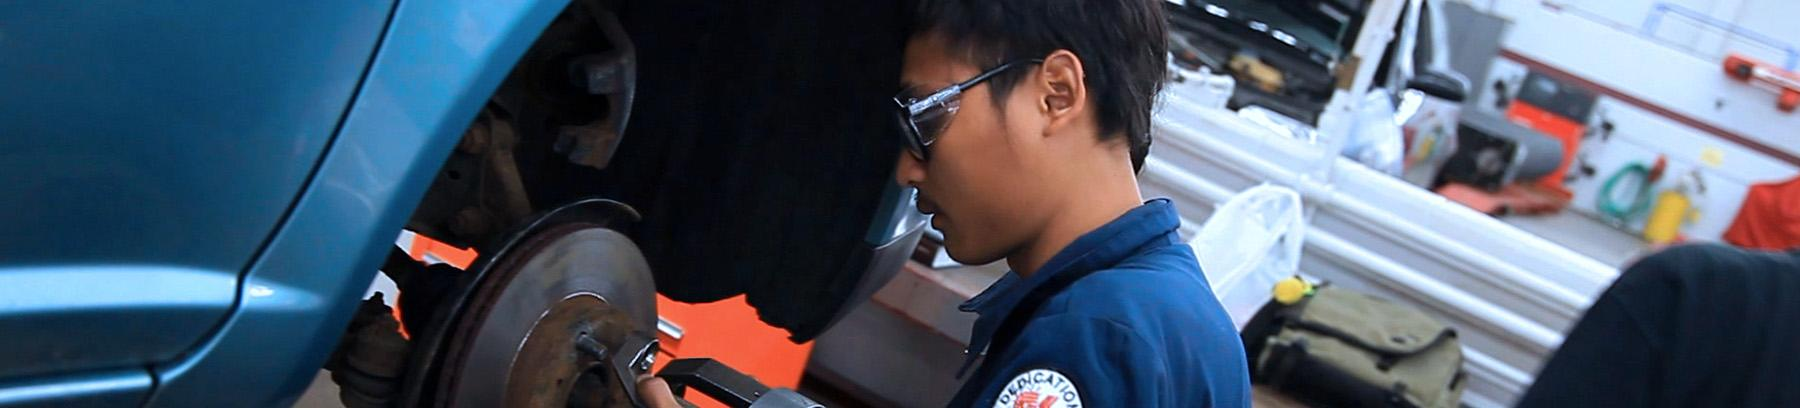 Image of auto student working on a car's breaks.